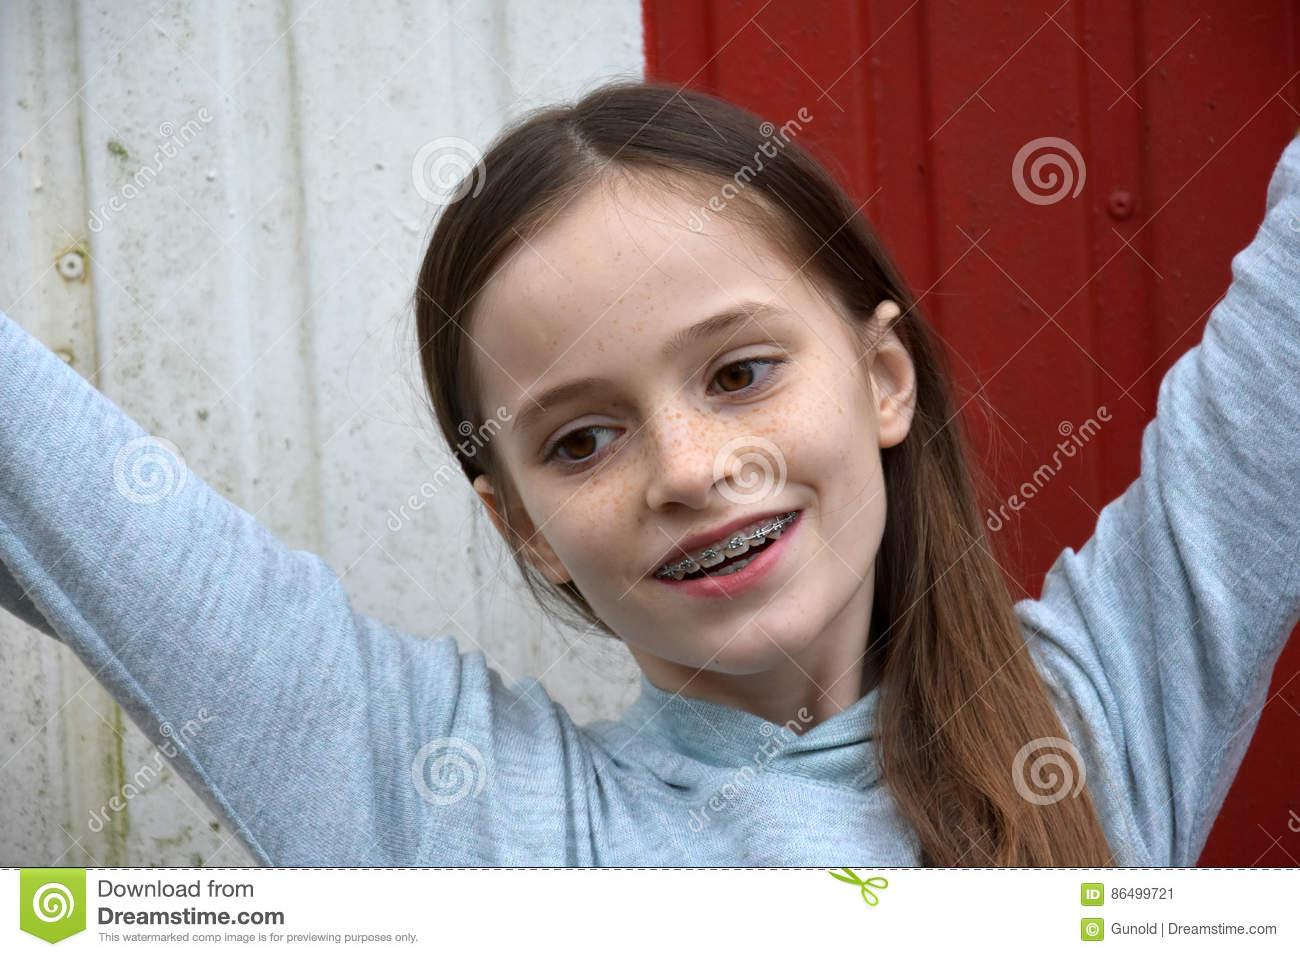 4 340 Cute Girl Braces Photos Free Royalty Free Stock Photos From Dreamstime